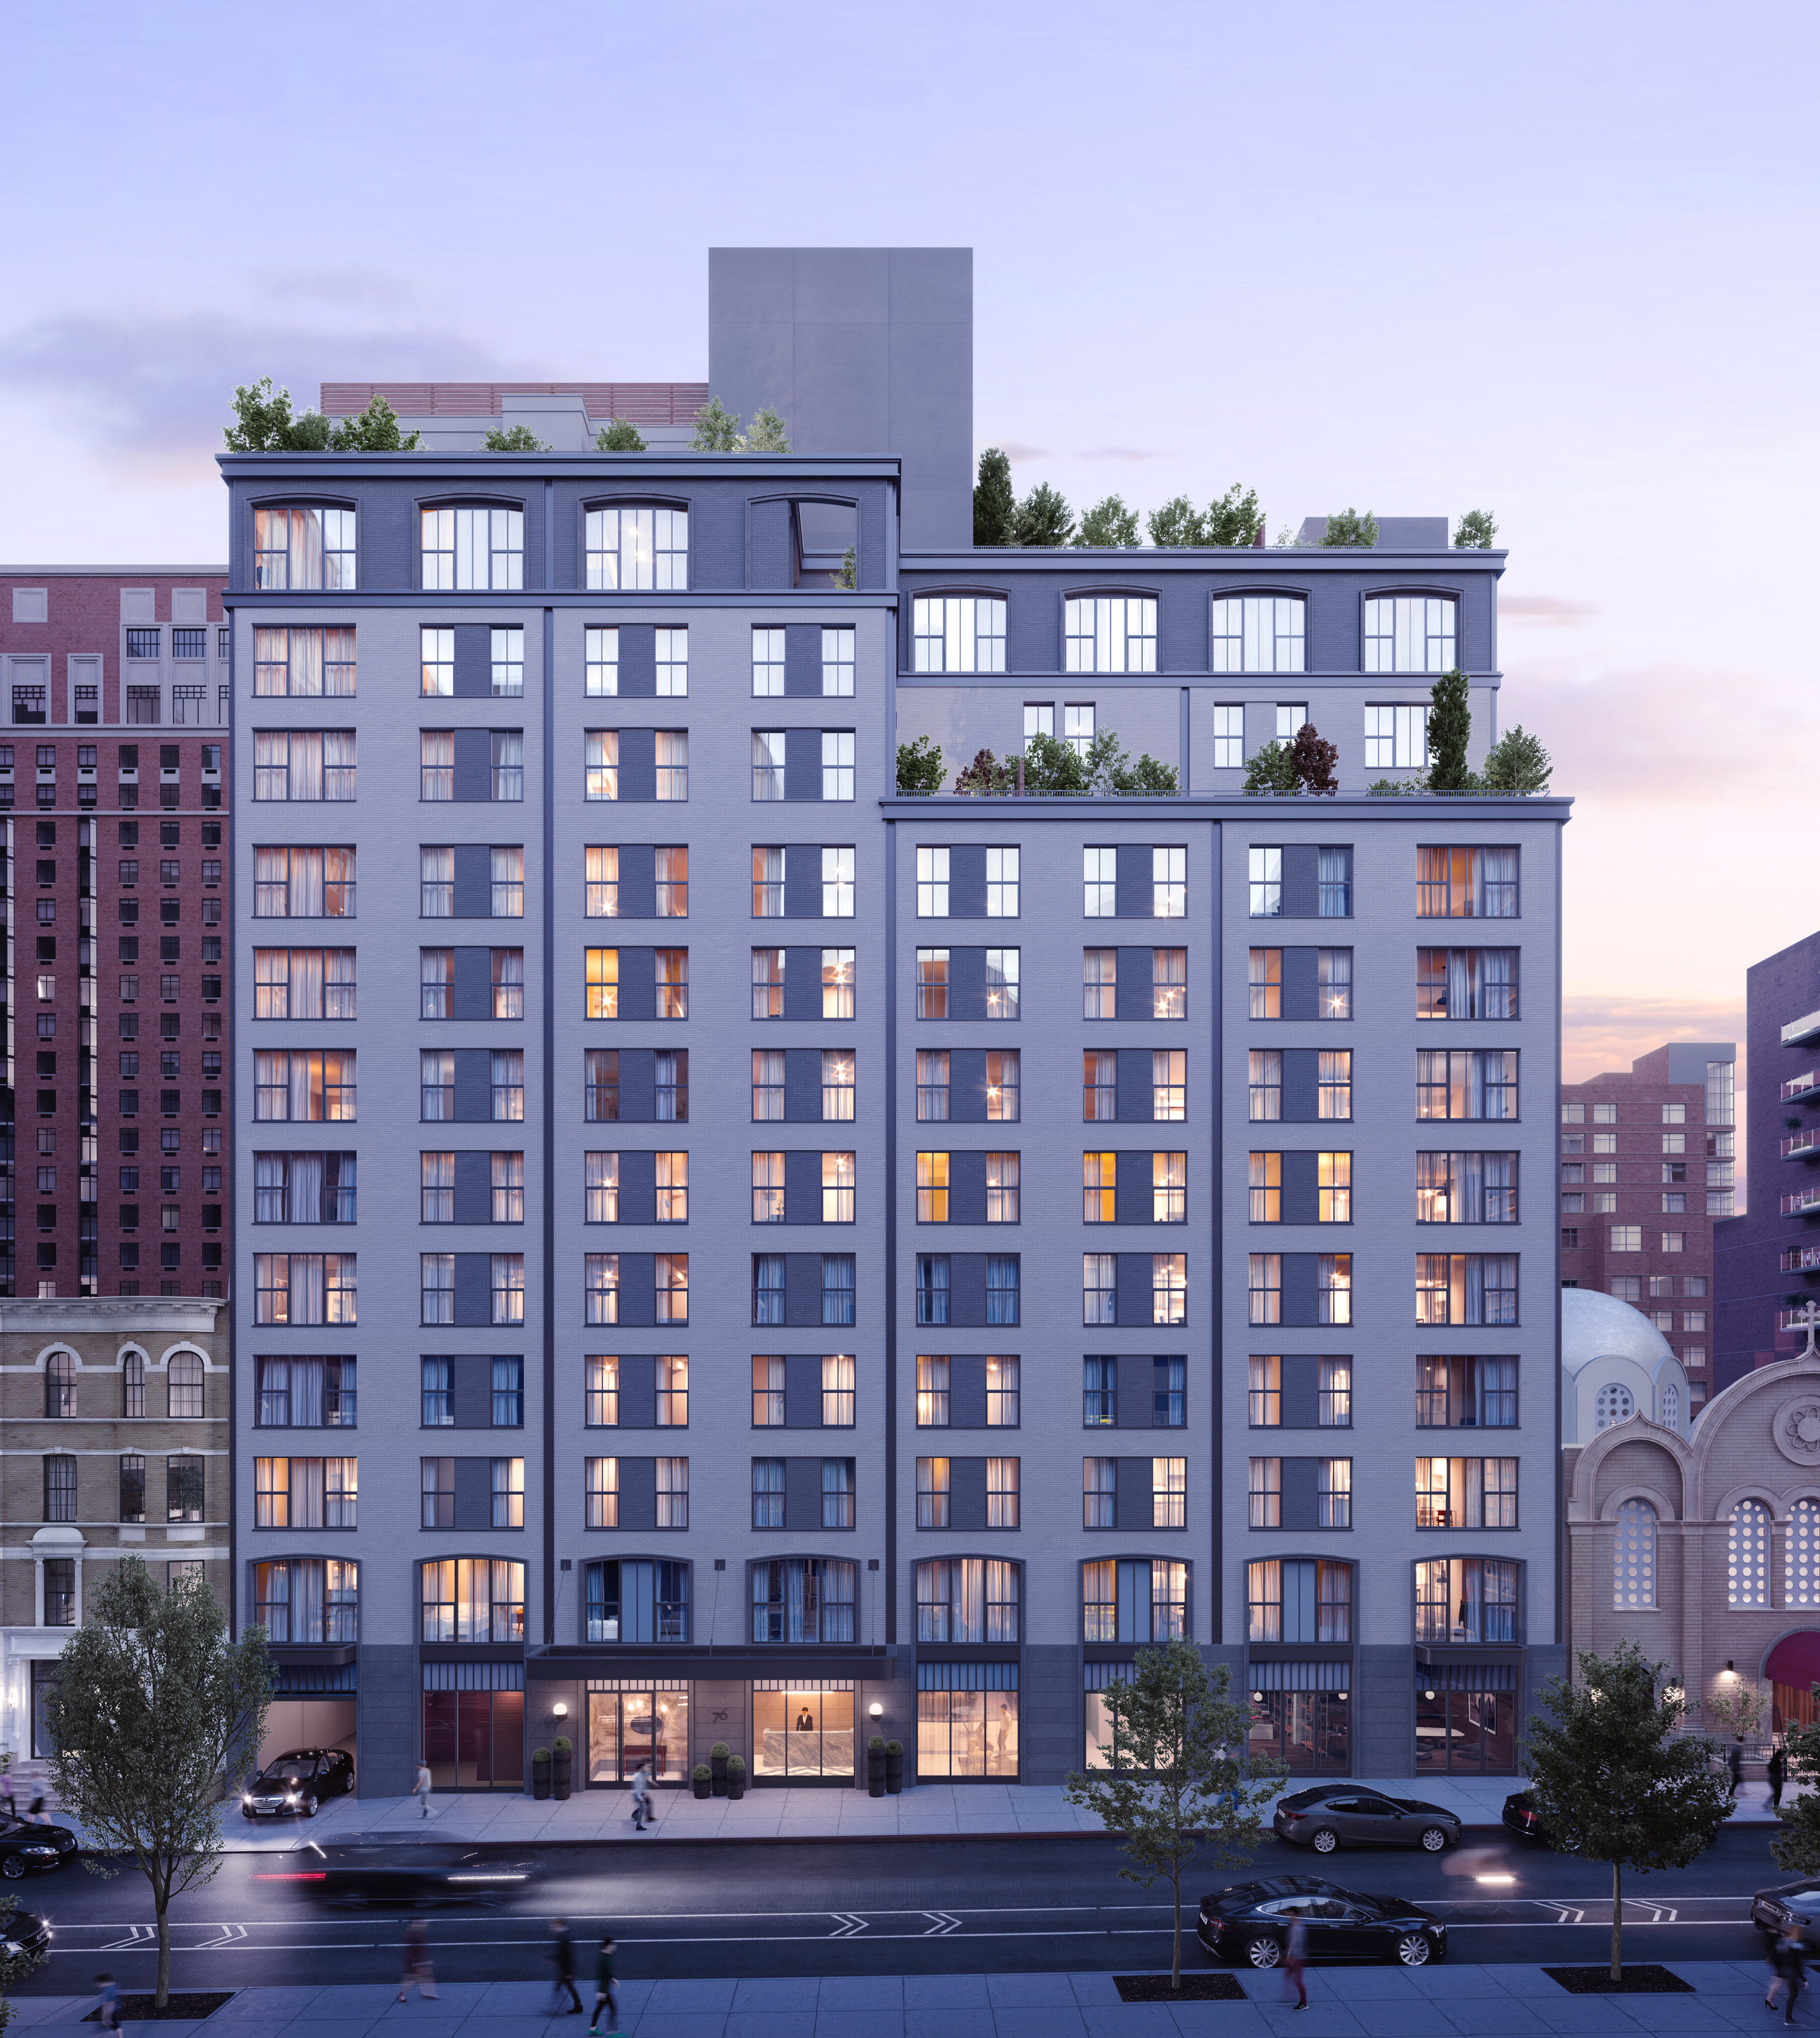 Get A First Look At Brooklyn's Newest Full-Service Boutique Luxury Condominium, The Symon